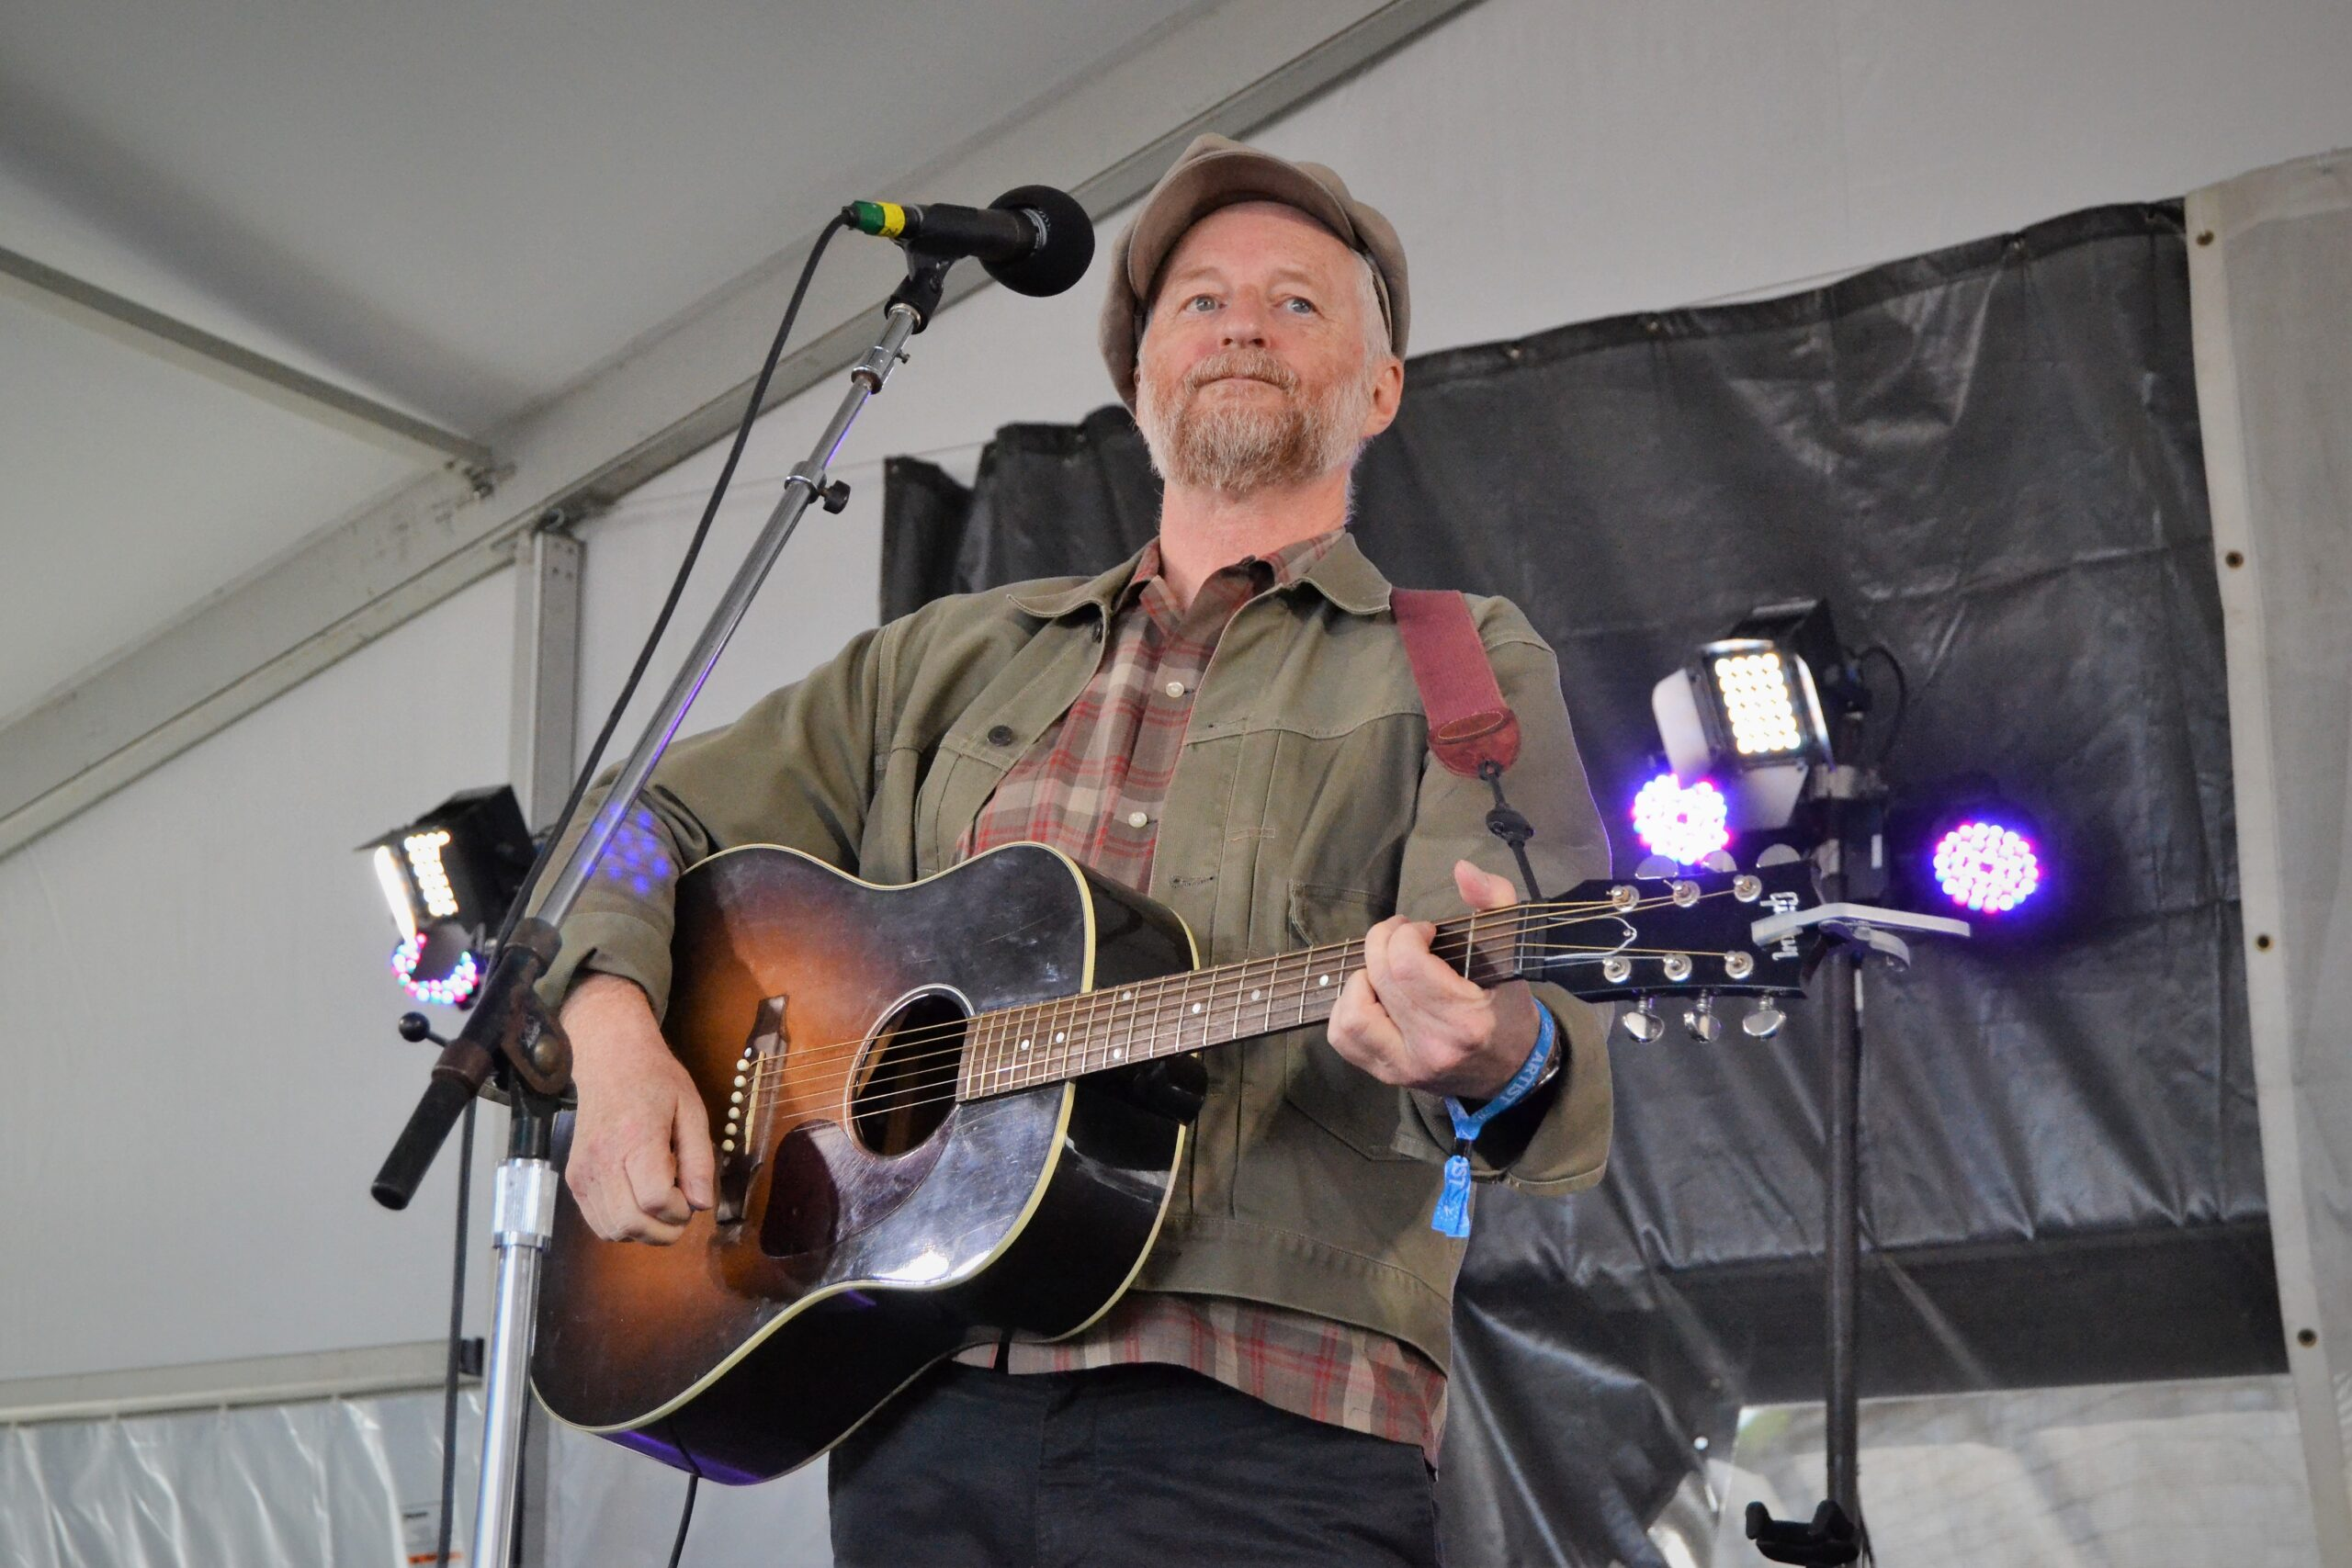 Live Music Streaming May 10 – Billy Bragg, Richard Thompson and The Stones!